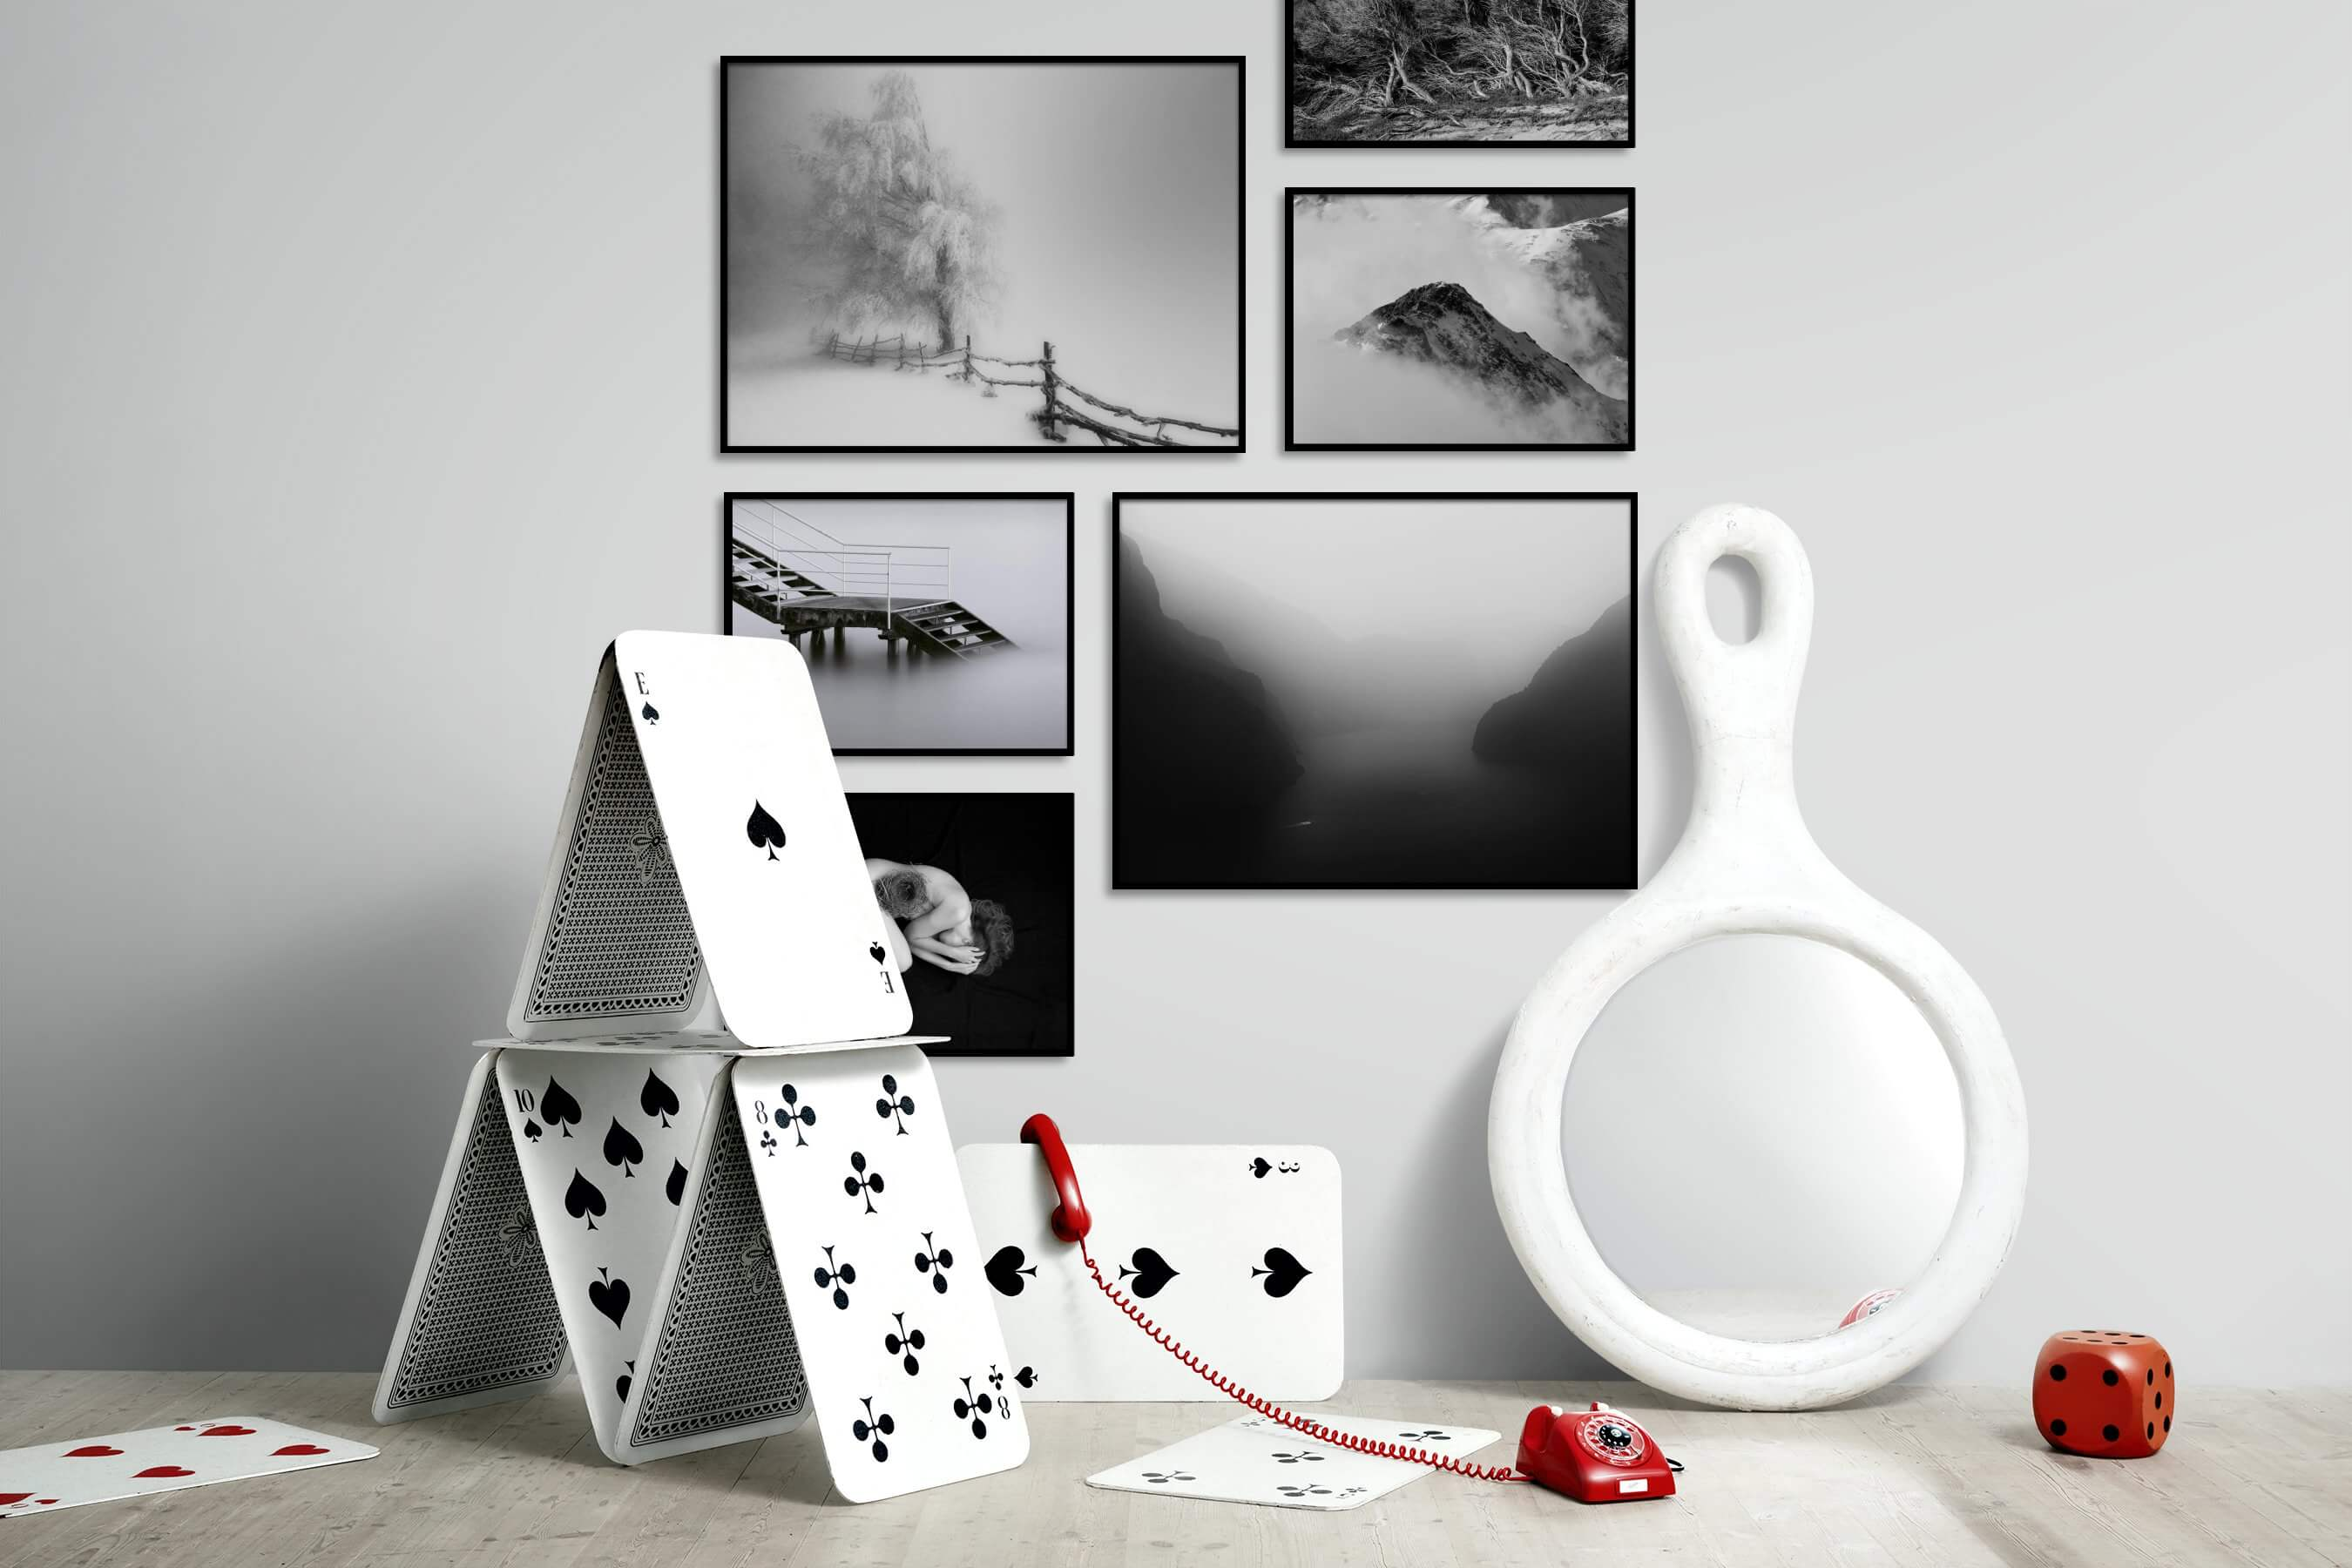 Gallery wall idea with six framed pictures arranged on a wall depicting Black & White, For the Minimalist, Country Life, Nature, Mindfulness, Artsy, Dark Tones, and For the Moderate